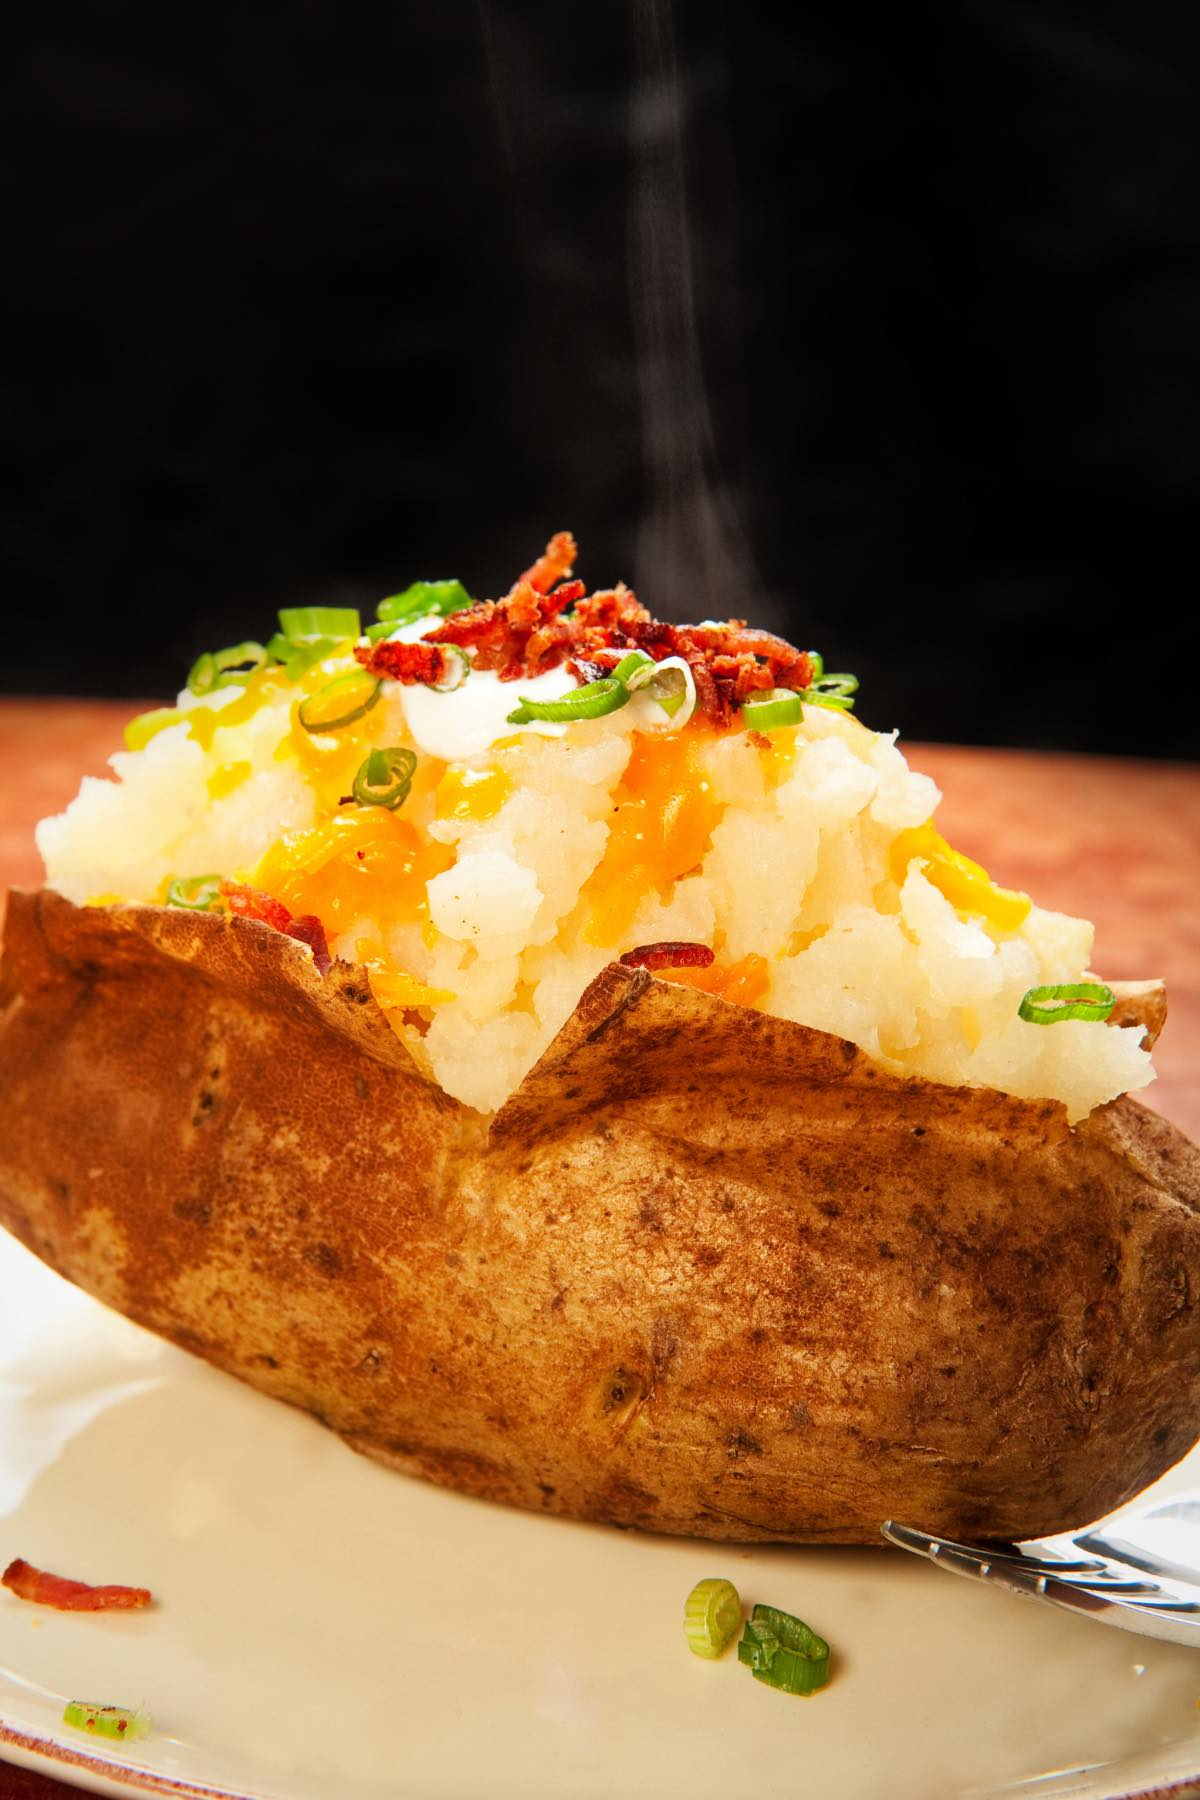 A fluffy baked potato with favorite toppings including butter, bacon bits and green onions